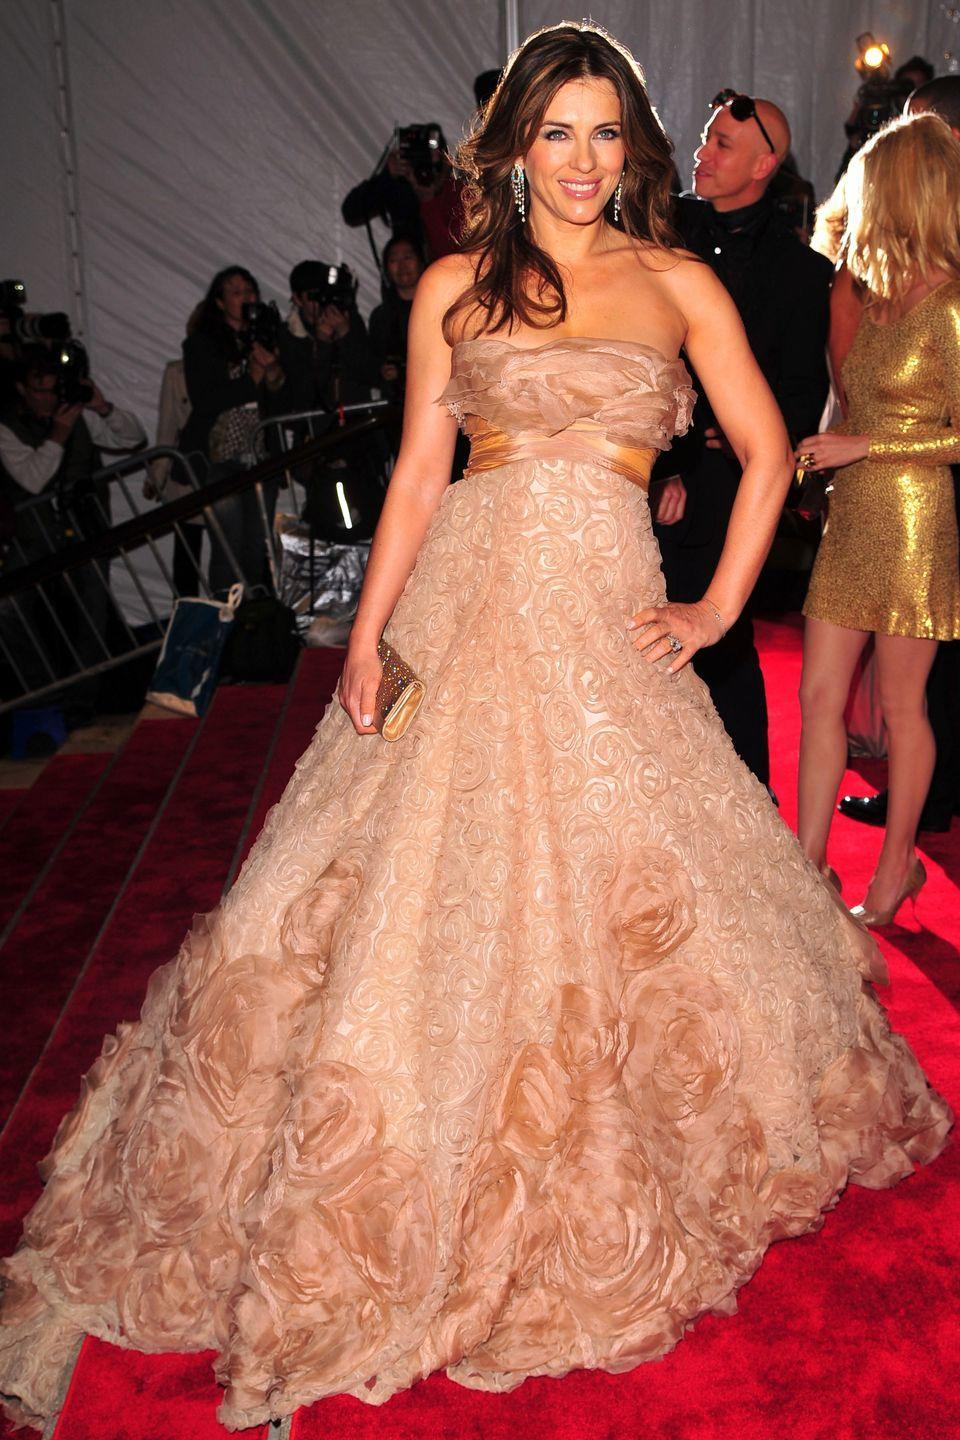 """<p>Elizabeth at another Met Gala, this time dressed in Elie Saab for the """"Model as Muse: Embodying Fashion"""" theme.</p>"""